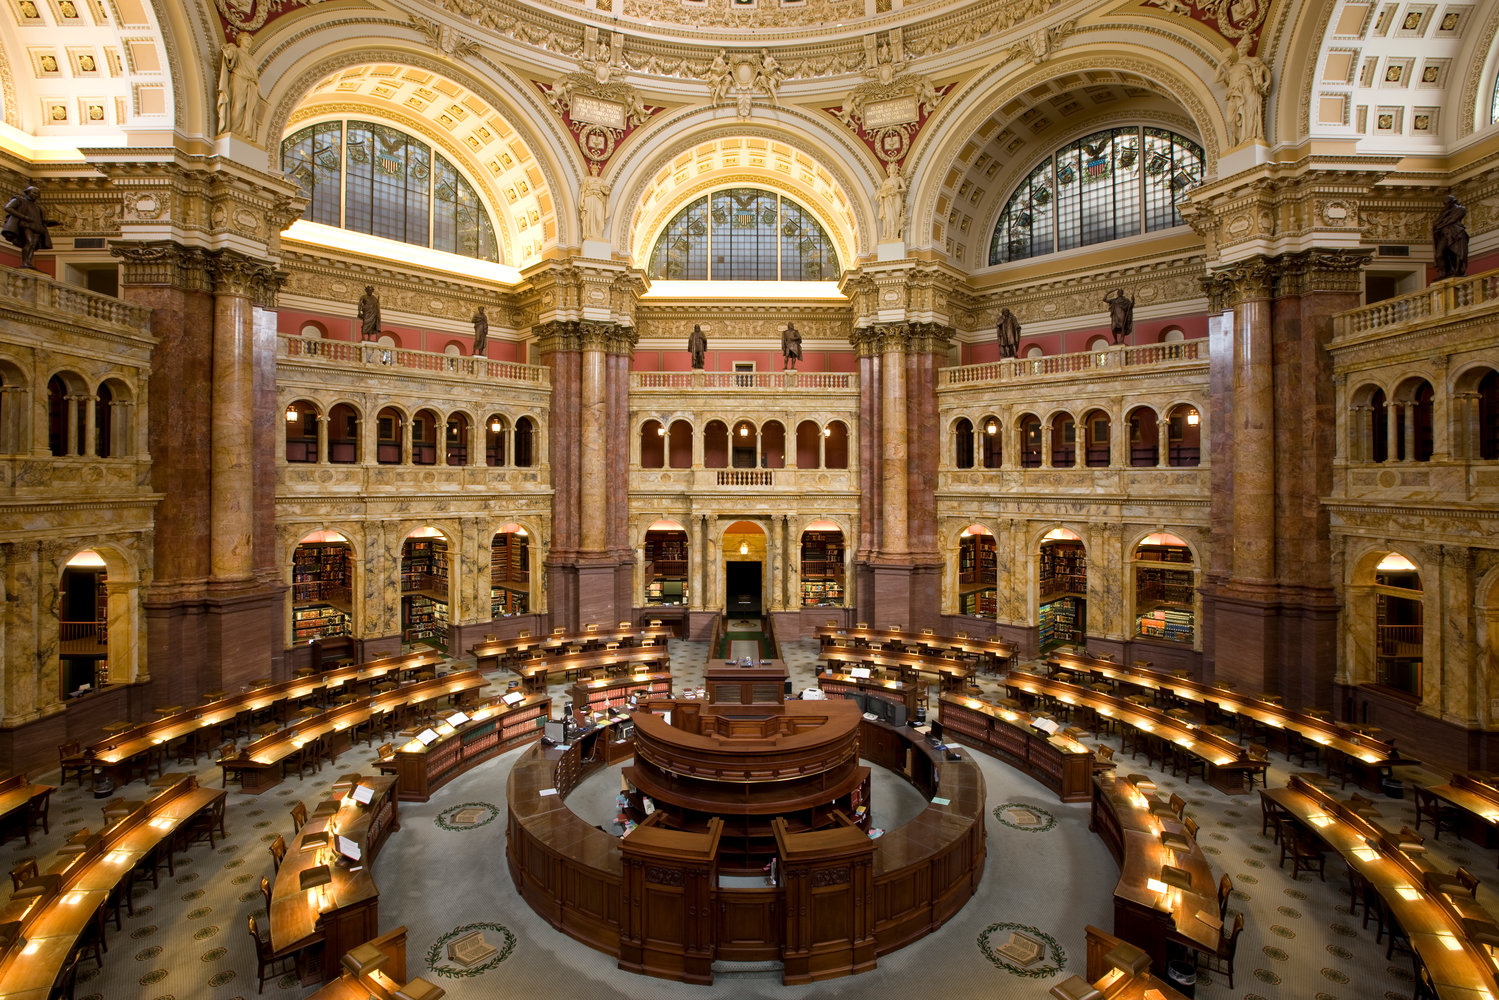 The Library of Congress' main reading room.